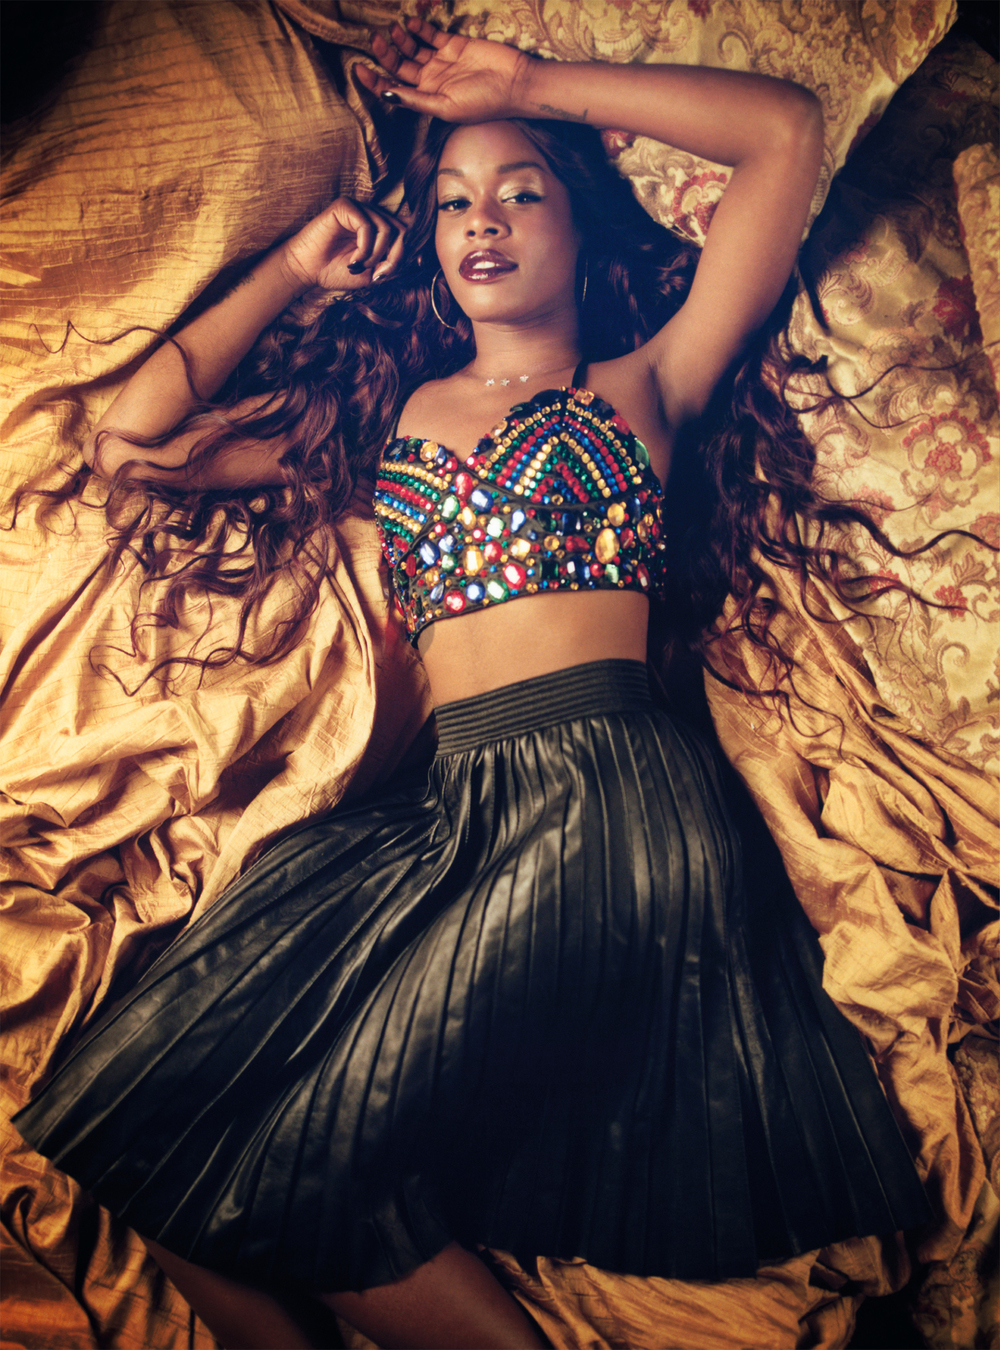 ASOS___Azealia_Tyrone_Lebon_January_2012-5.jpg